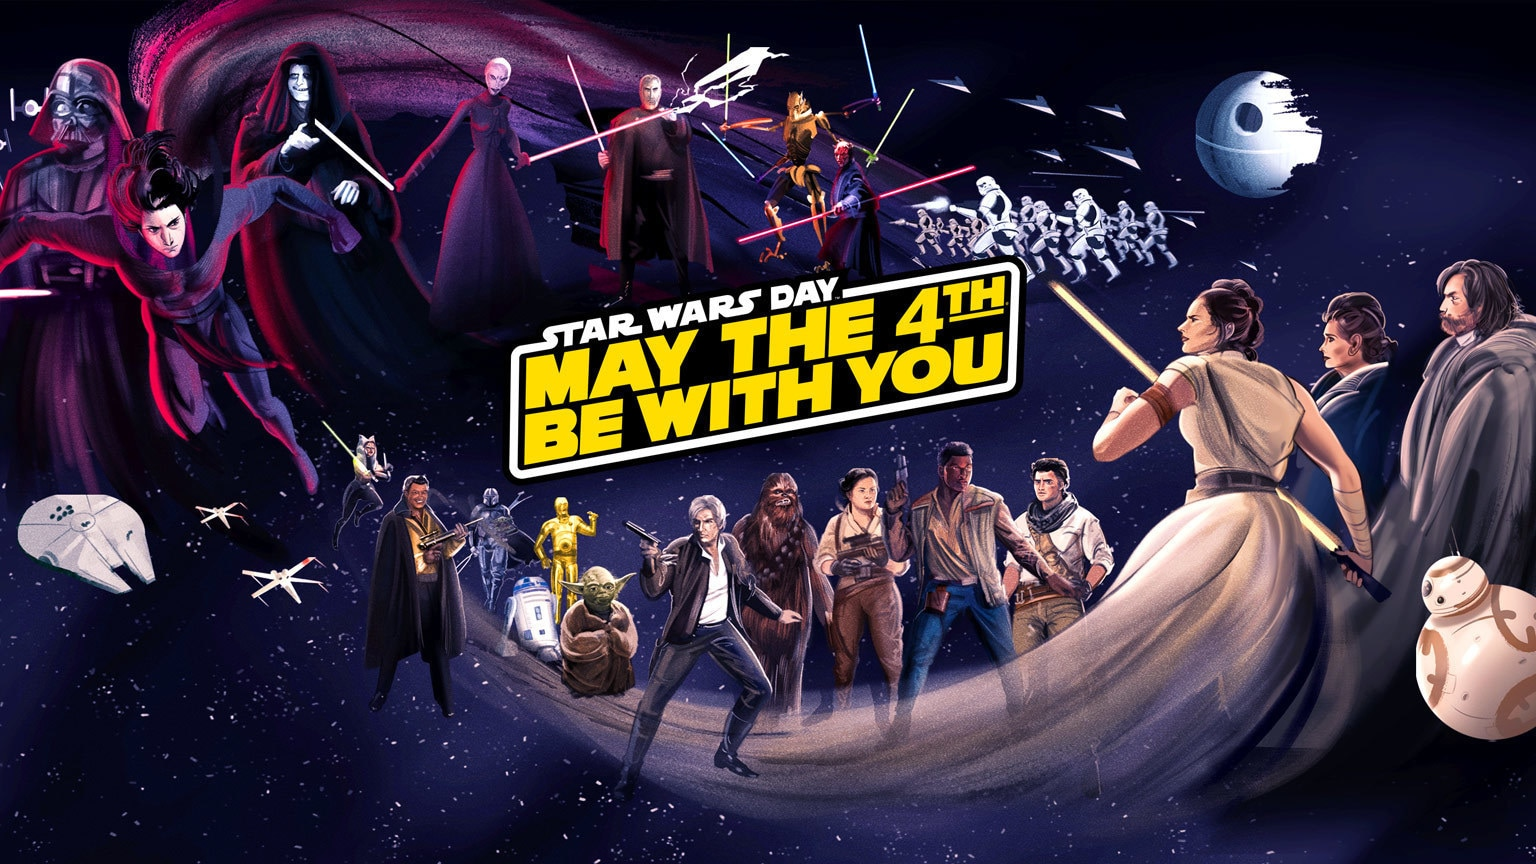 Disney+ to Celebrate Star Wars Day with Fan Art Takeover